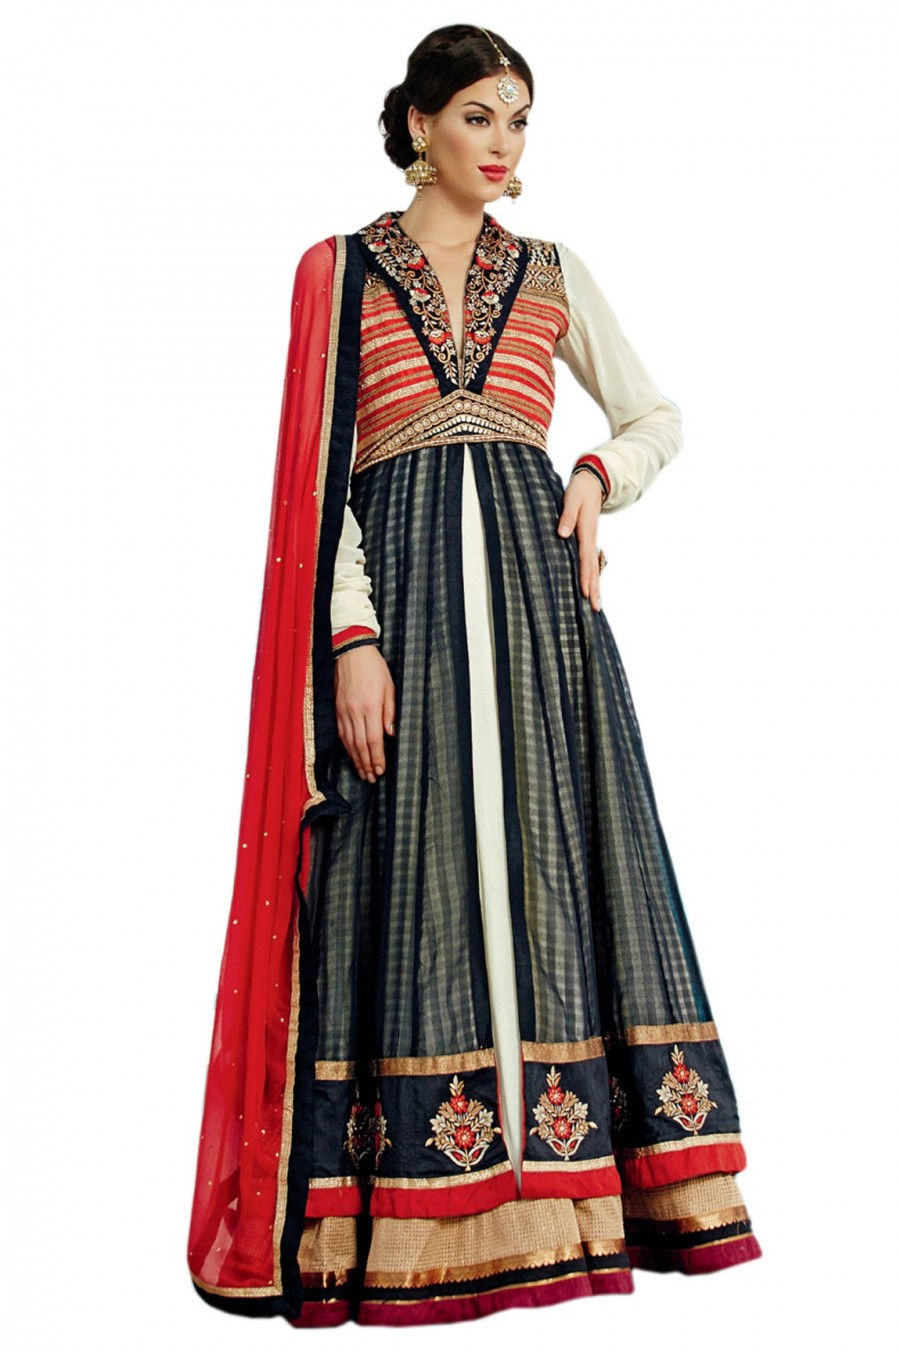 77c51ca478 Buy Cream and Navy Blue Banarasi Anarkali Suit Comprising Floral Embroidery  Work with Dupatta Online